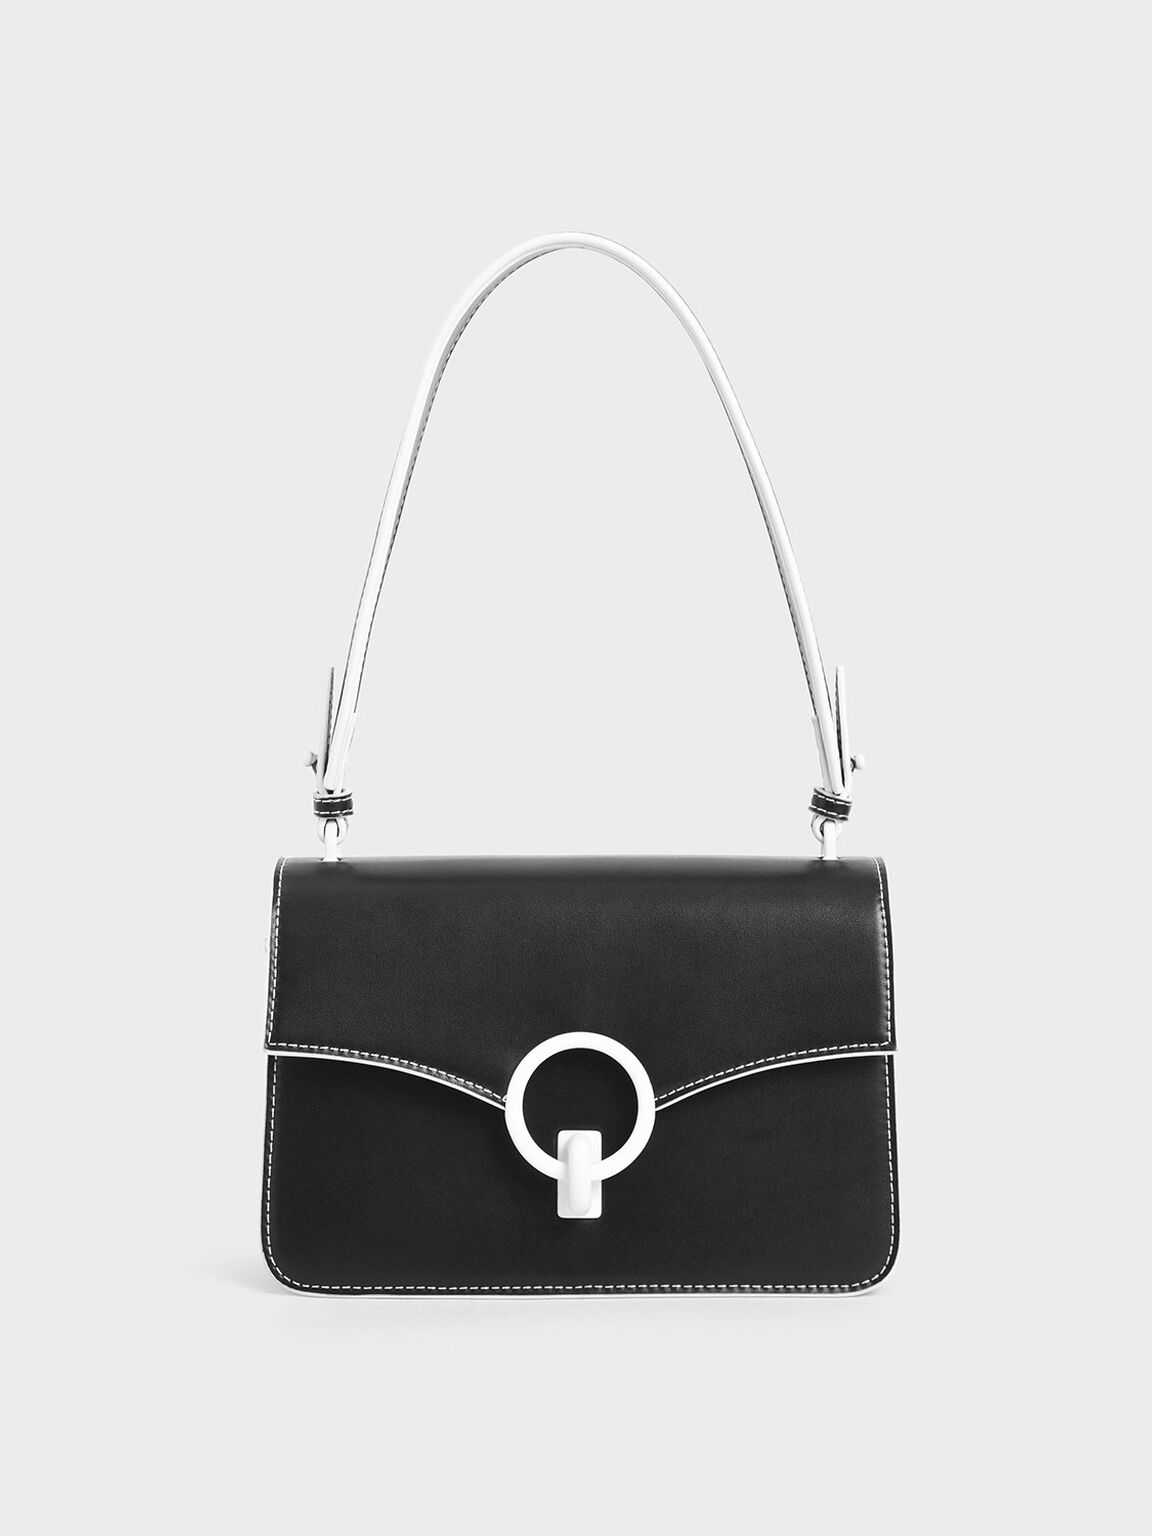 Turn-Lock Shoulder Bag, Black, hi-res